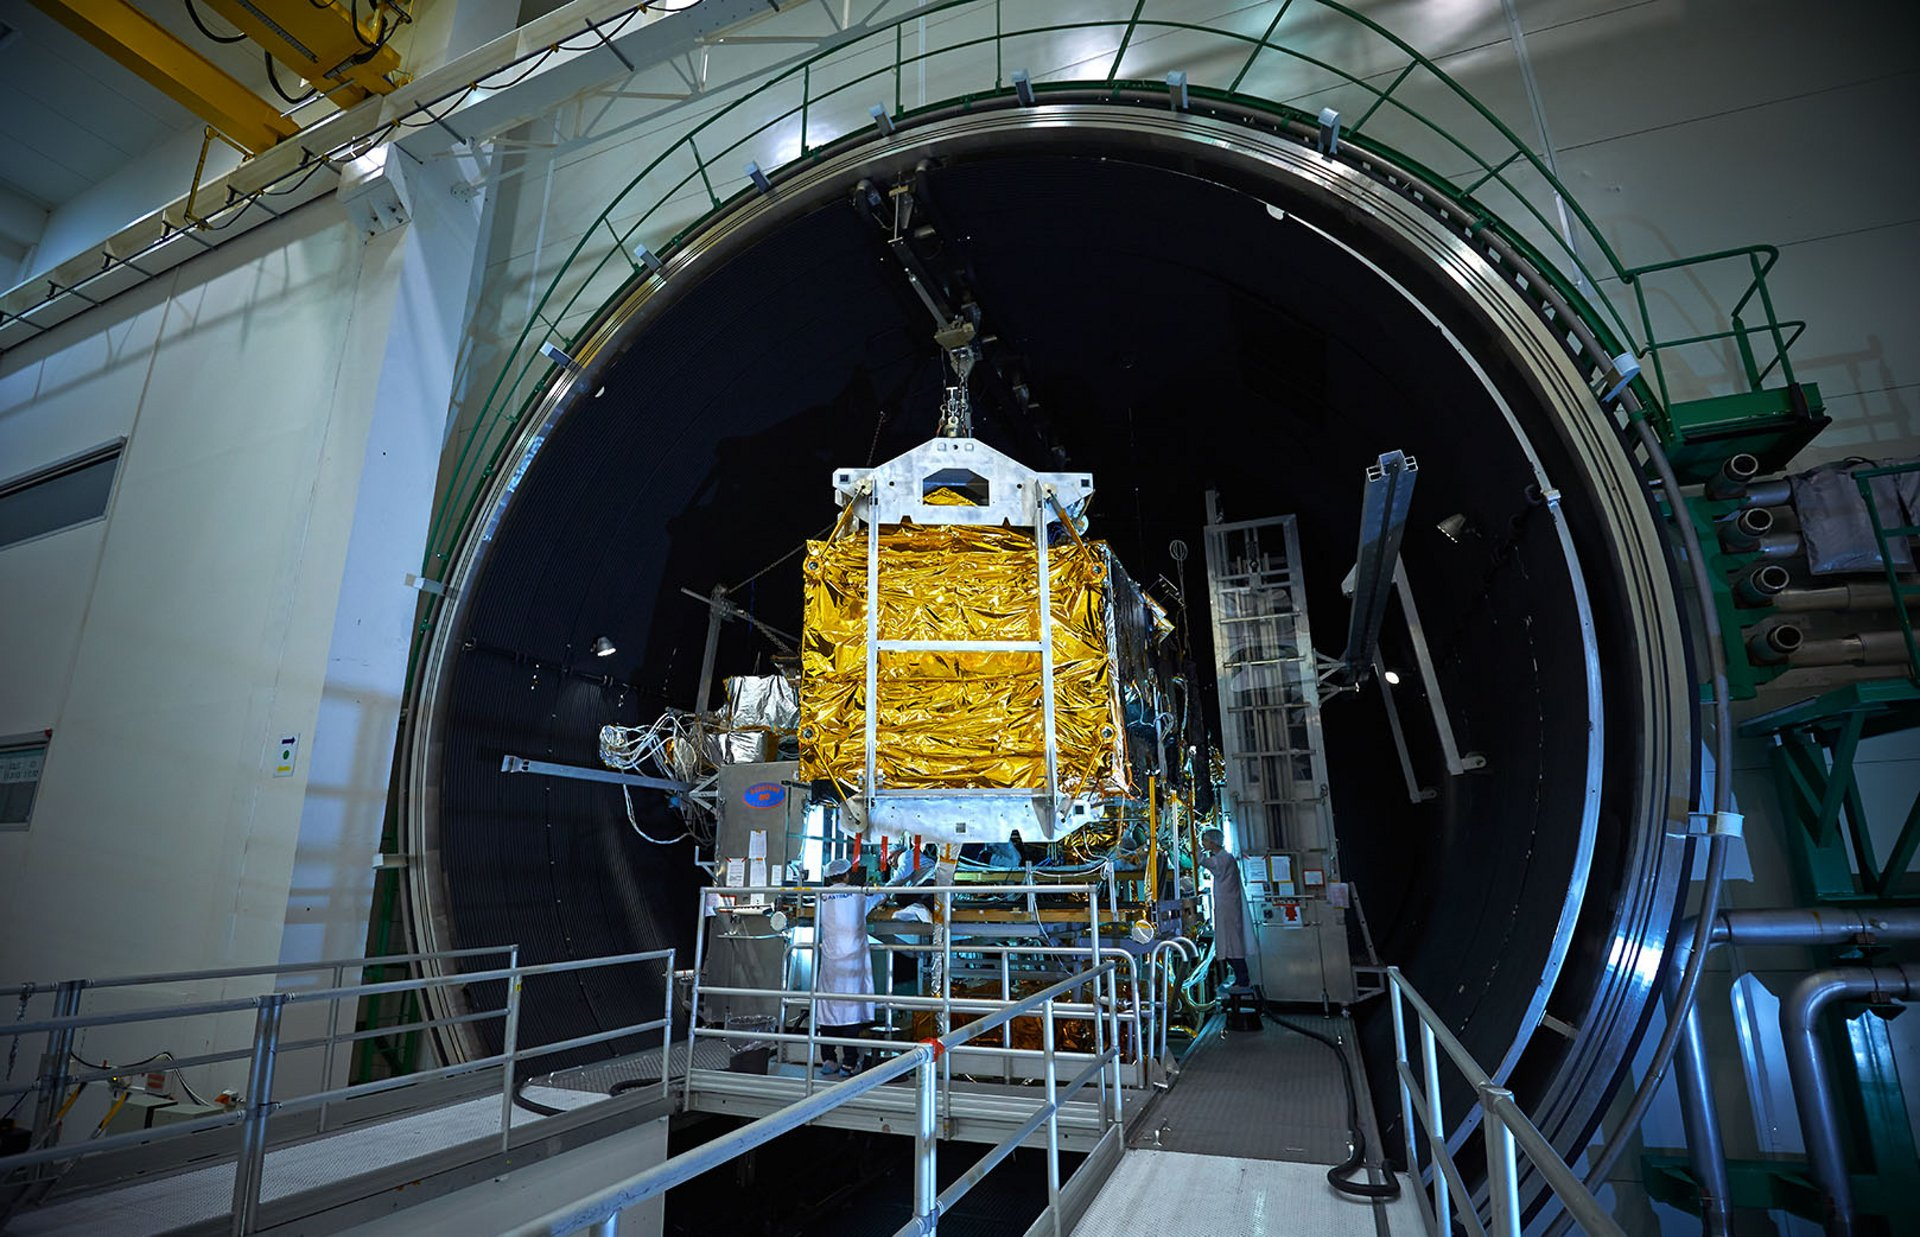 Airbus is a leader in environmental testing services for spacecraft, with three facilities across Europe.